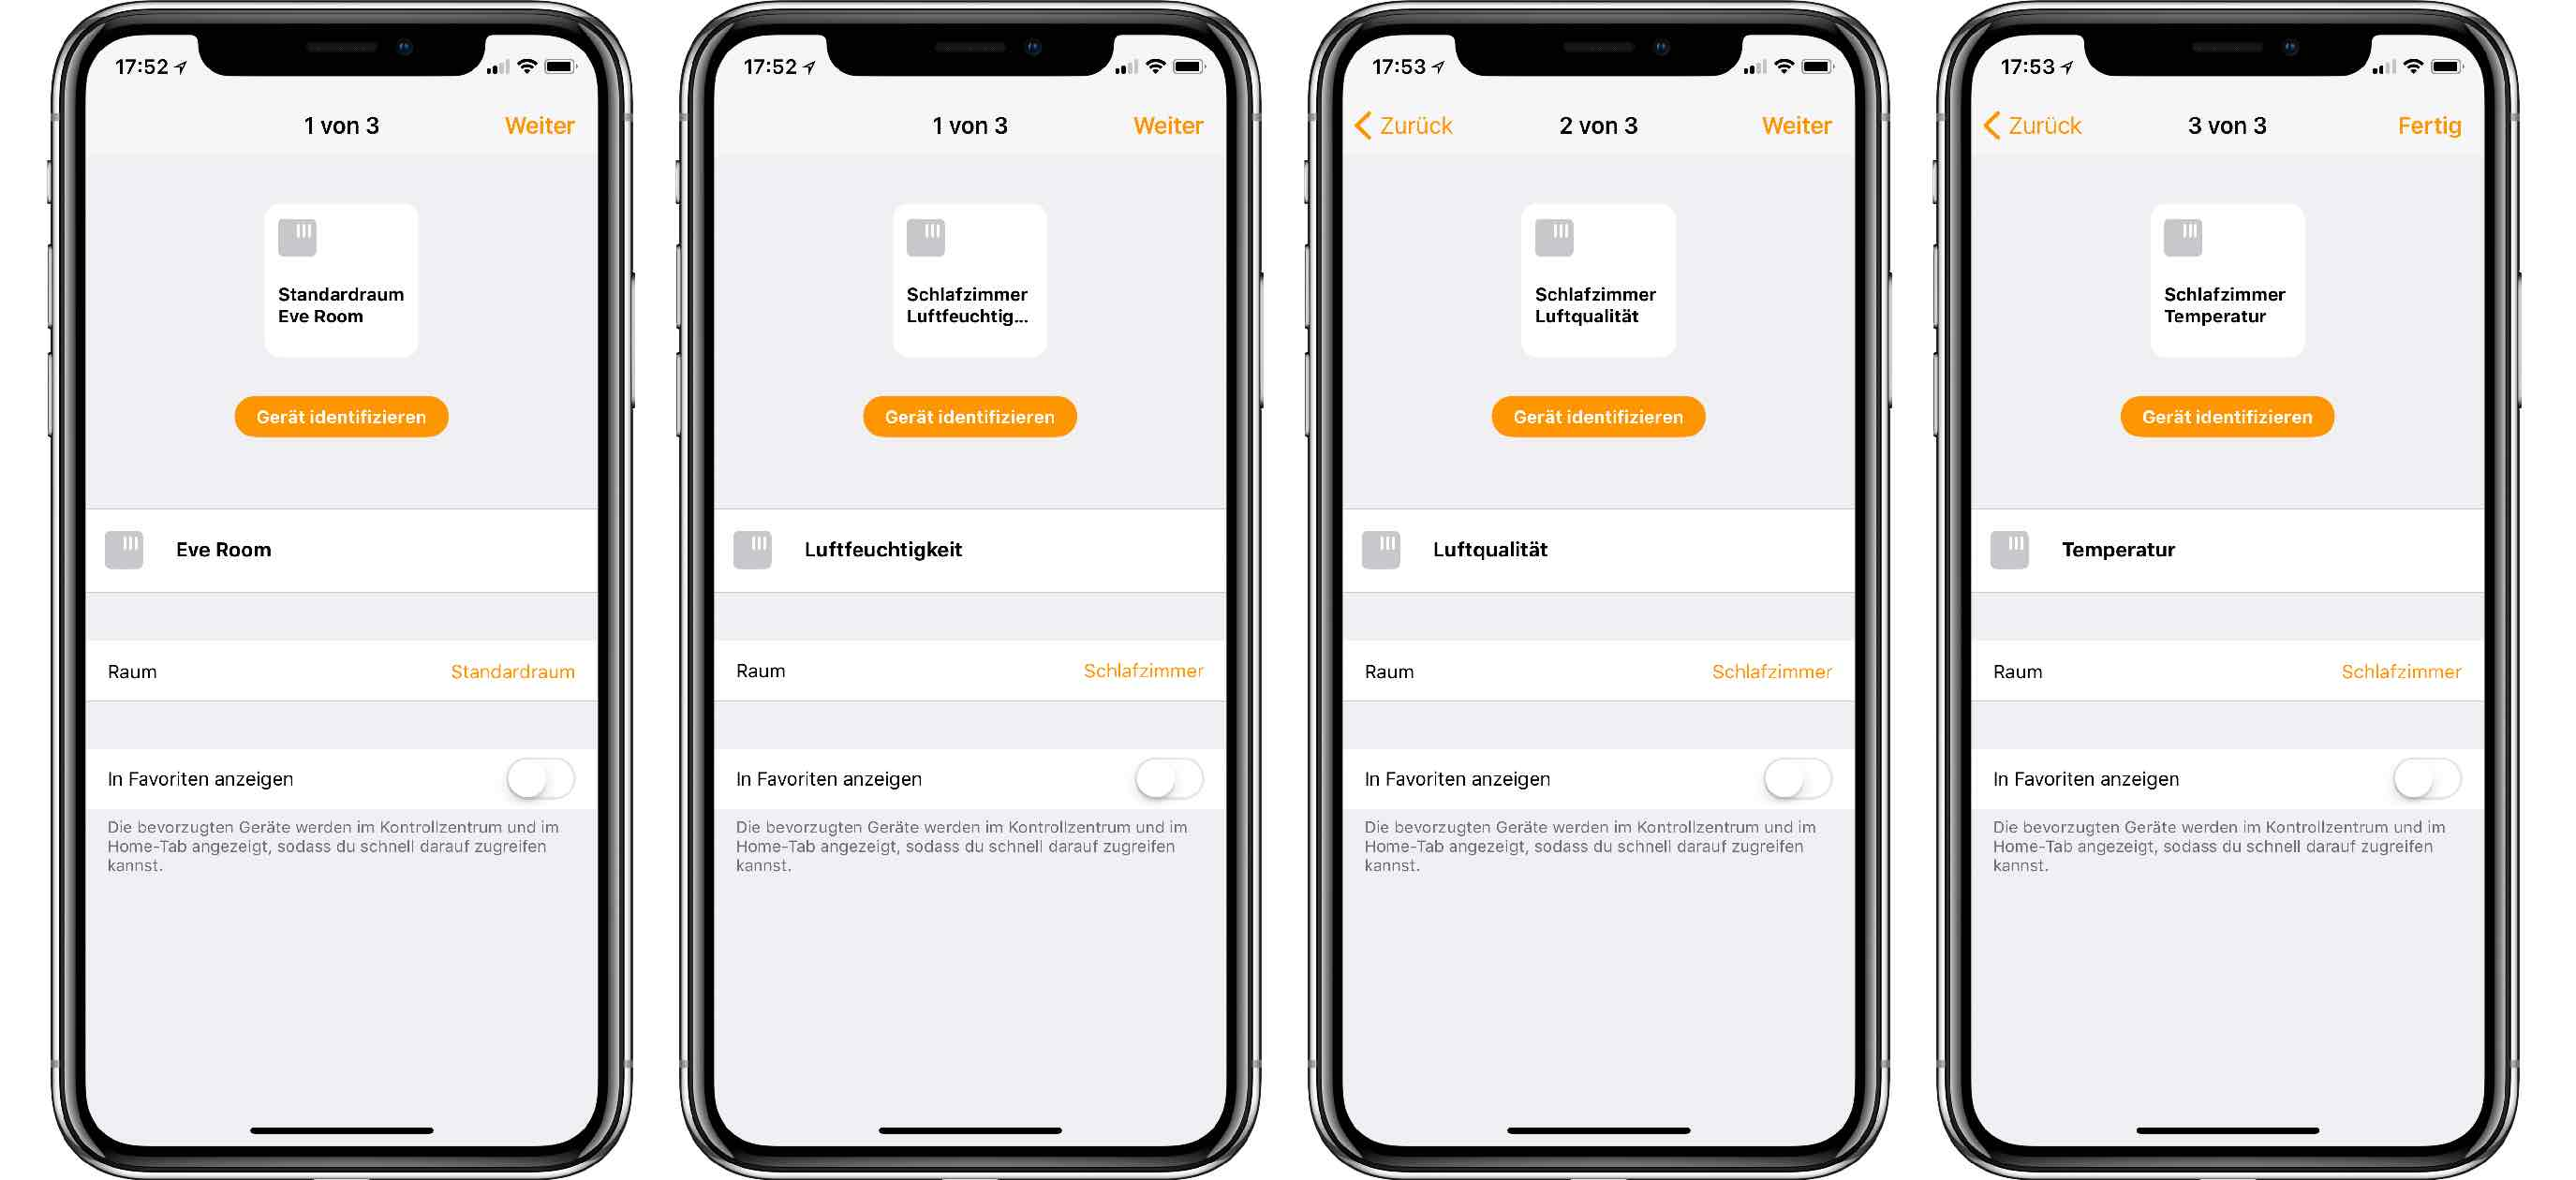 Eve_Room_2_HomeKit_Artikel_Review4 Im Test: Der Eve Room 2 - Temperatur, Luftfeuchtigkeit und Luftqualität in einem HomeKit-Gerät